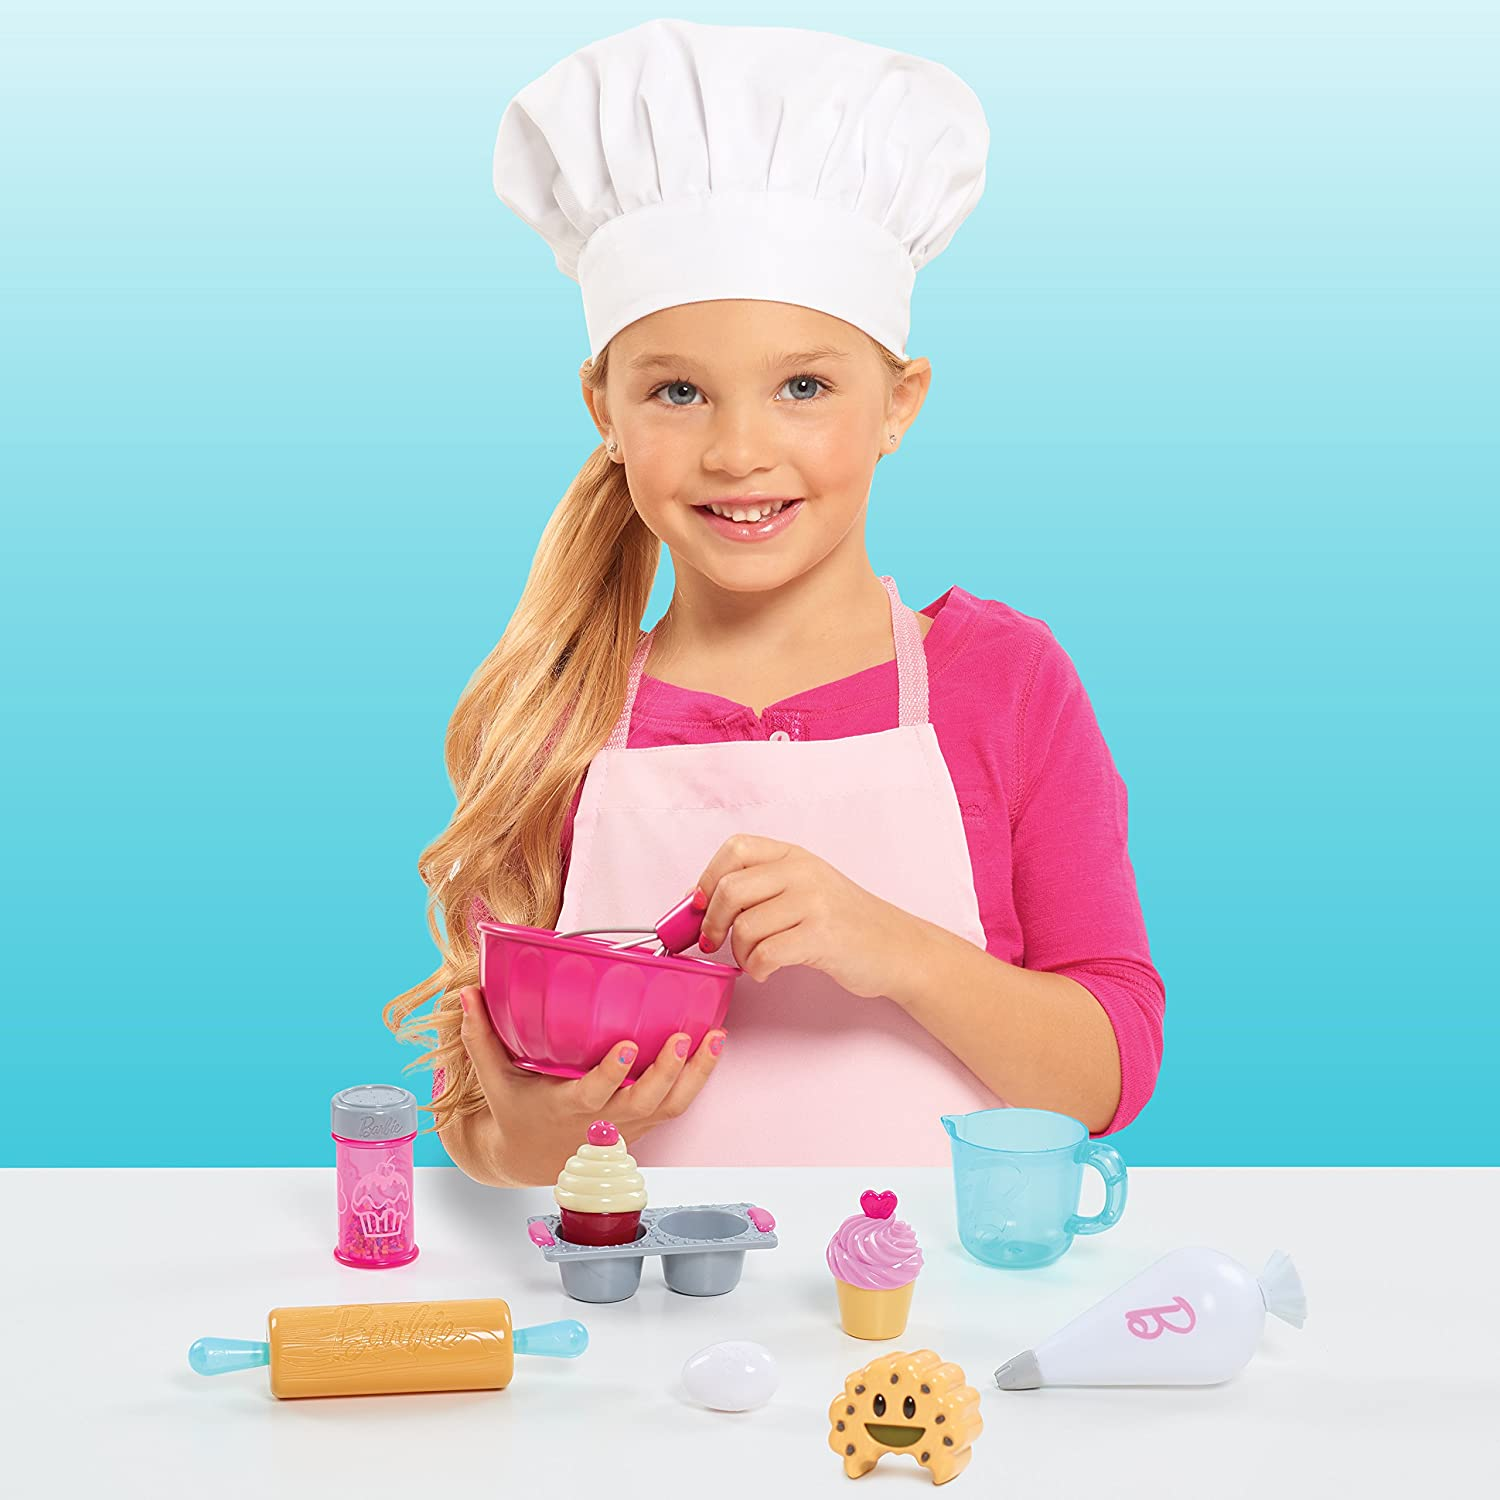 Amazon.com: Barbie Just Play 61851 0 Pastry Set: Toys & Games